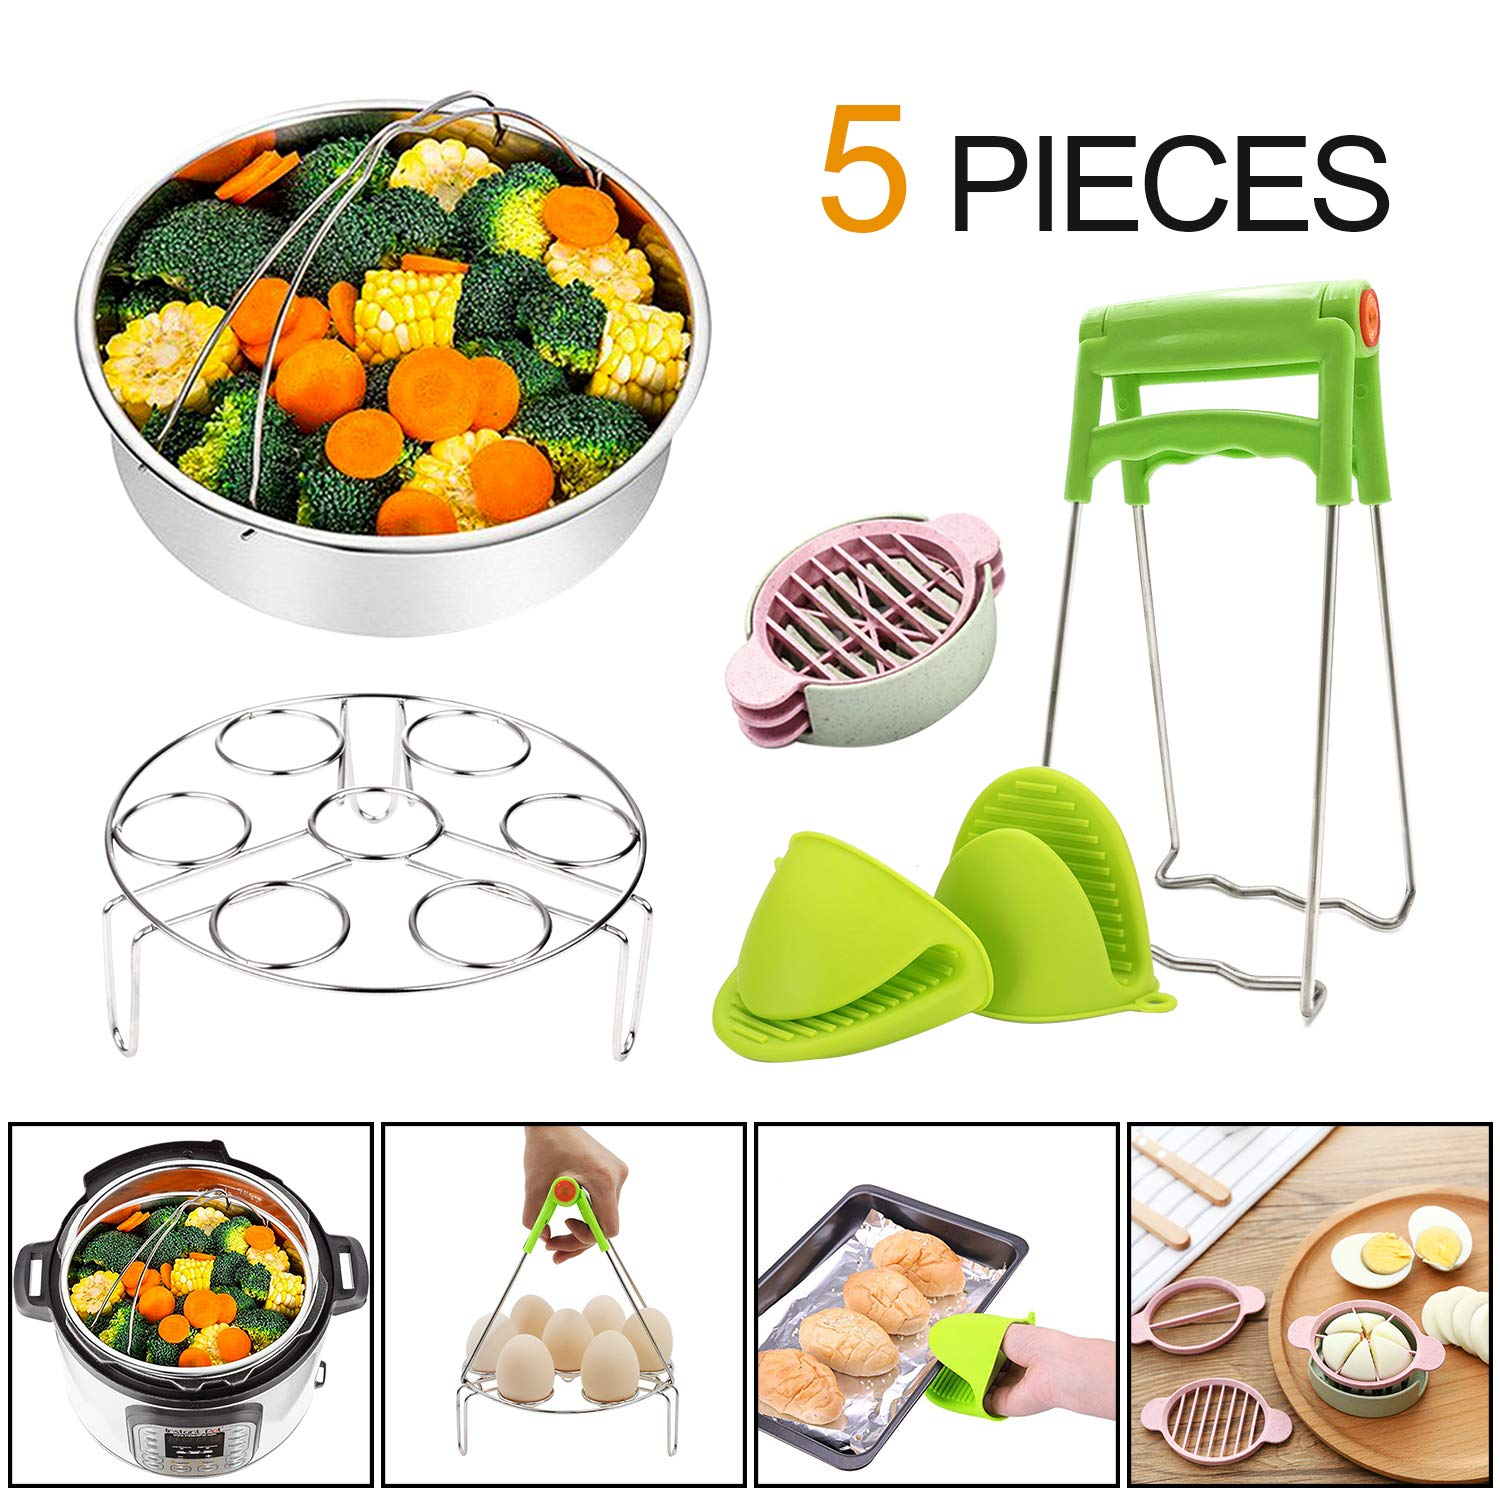 Instant Pot Accessories 6,8 qt Steamer Basket with Egg Steamer Rack, Foldable Bowl Plate Dish Clip Clamp and Pair of Silicone Mini Oven Mitts(5 Pieces)